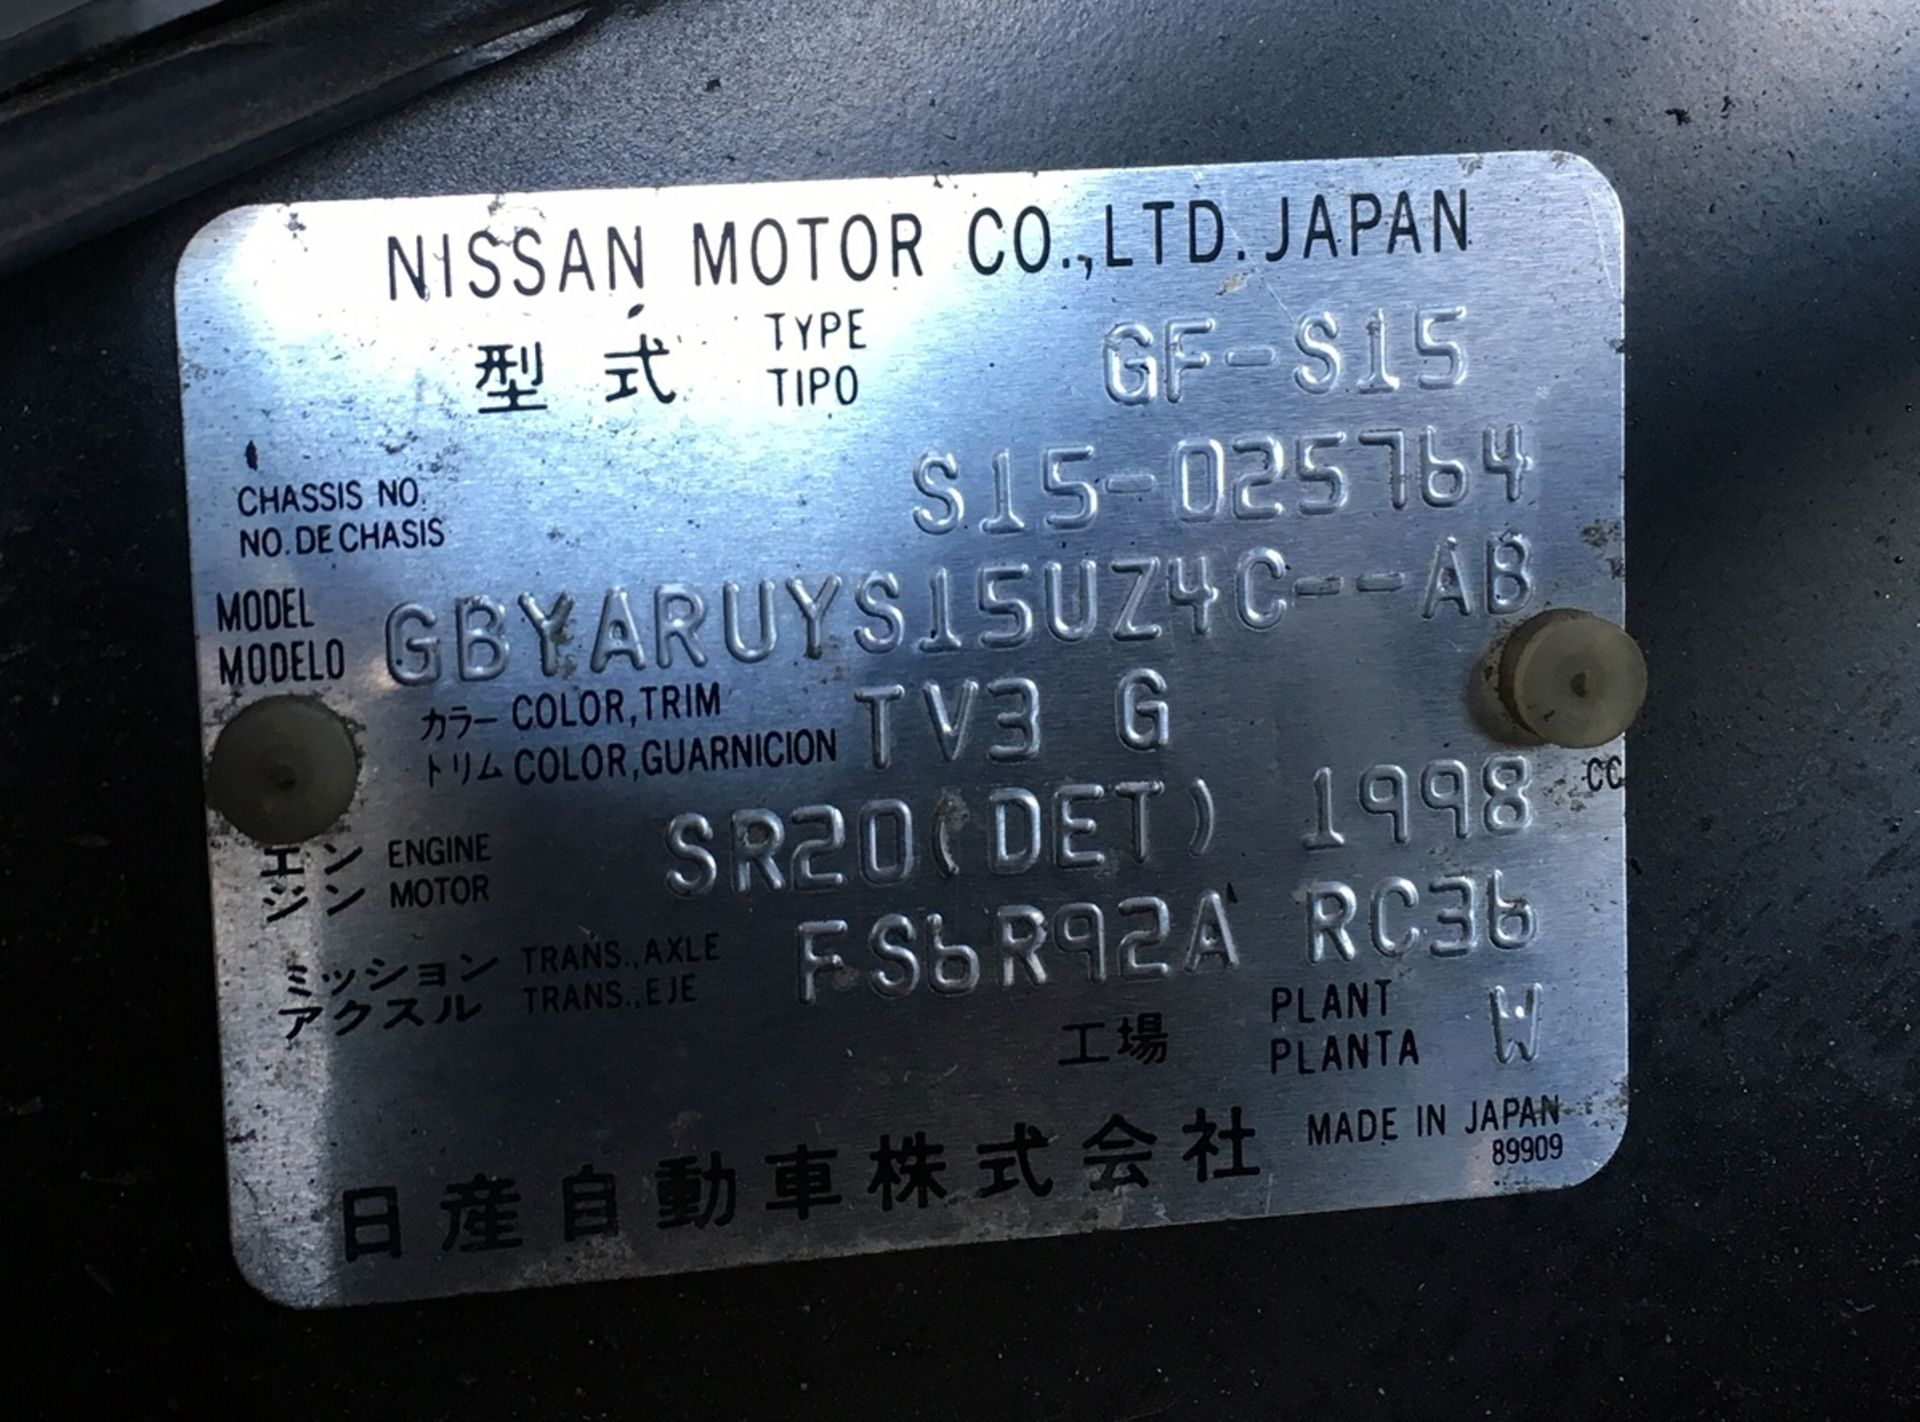 Nissan Silvia S15 2 door Coupe, LS3 V8 6.2 Litre Engine, Quaife 6 Speed Sequential Gearbox, - Image 12 of 12